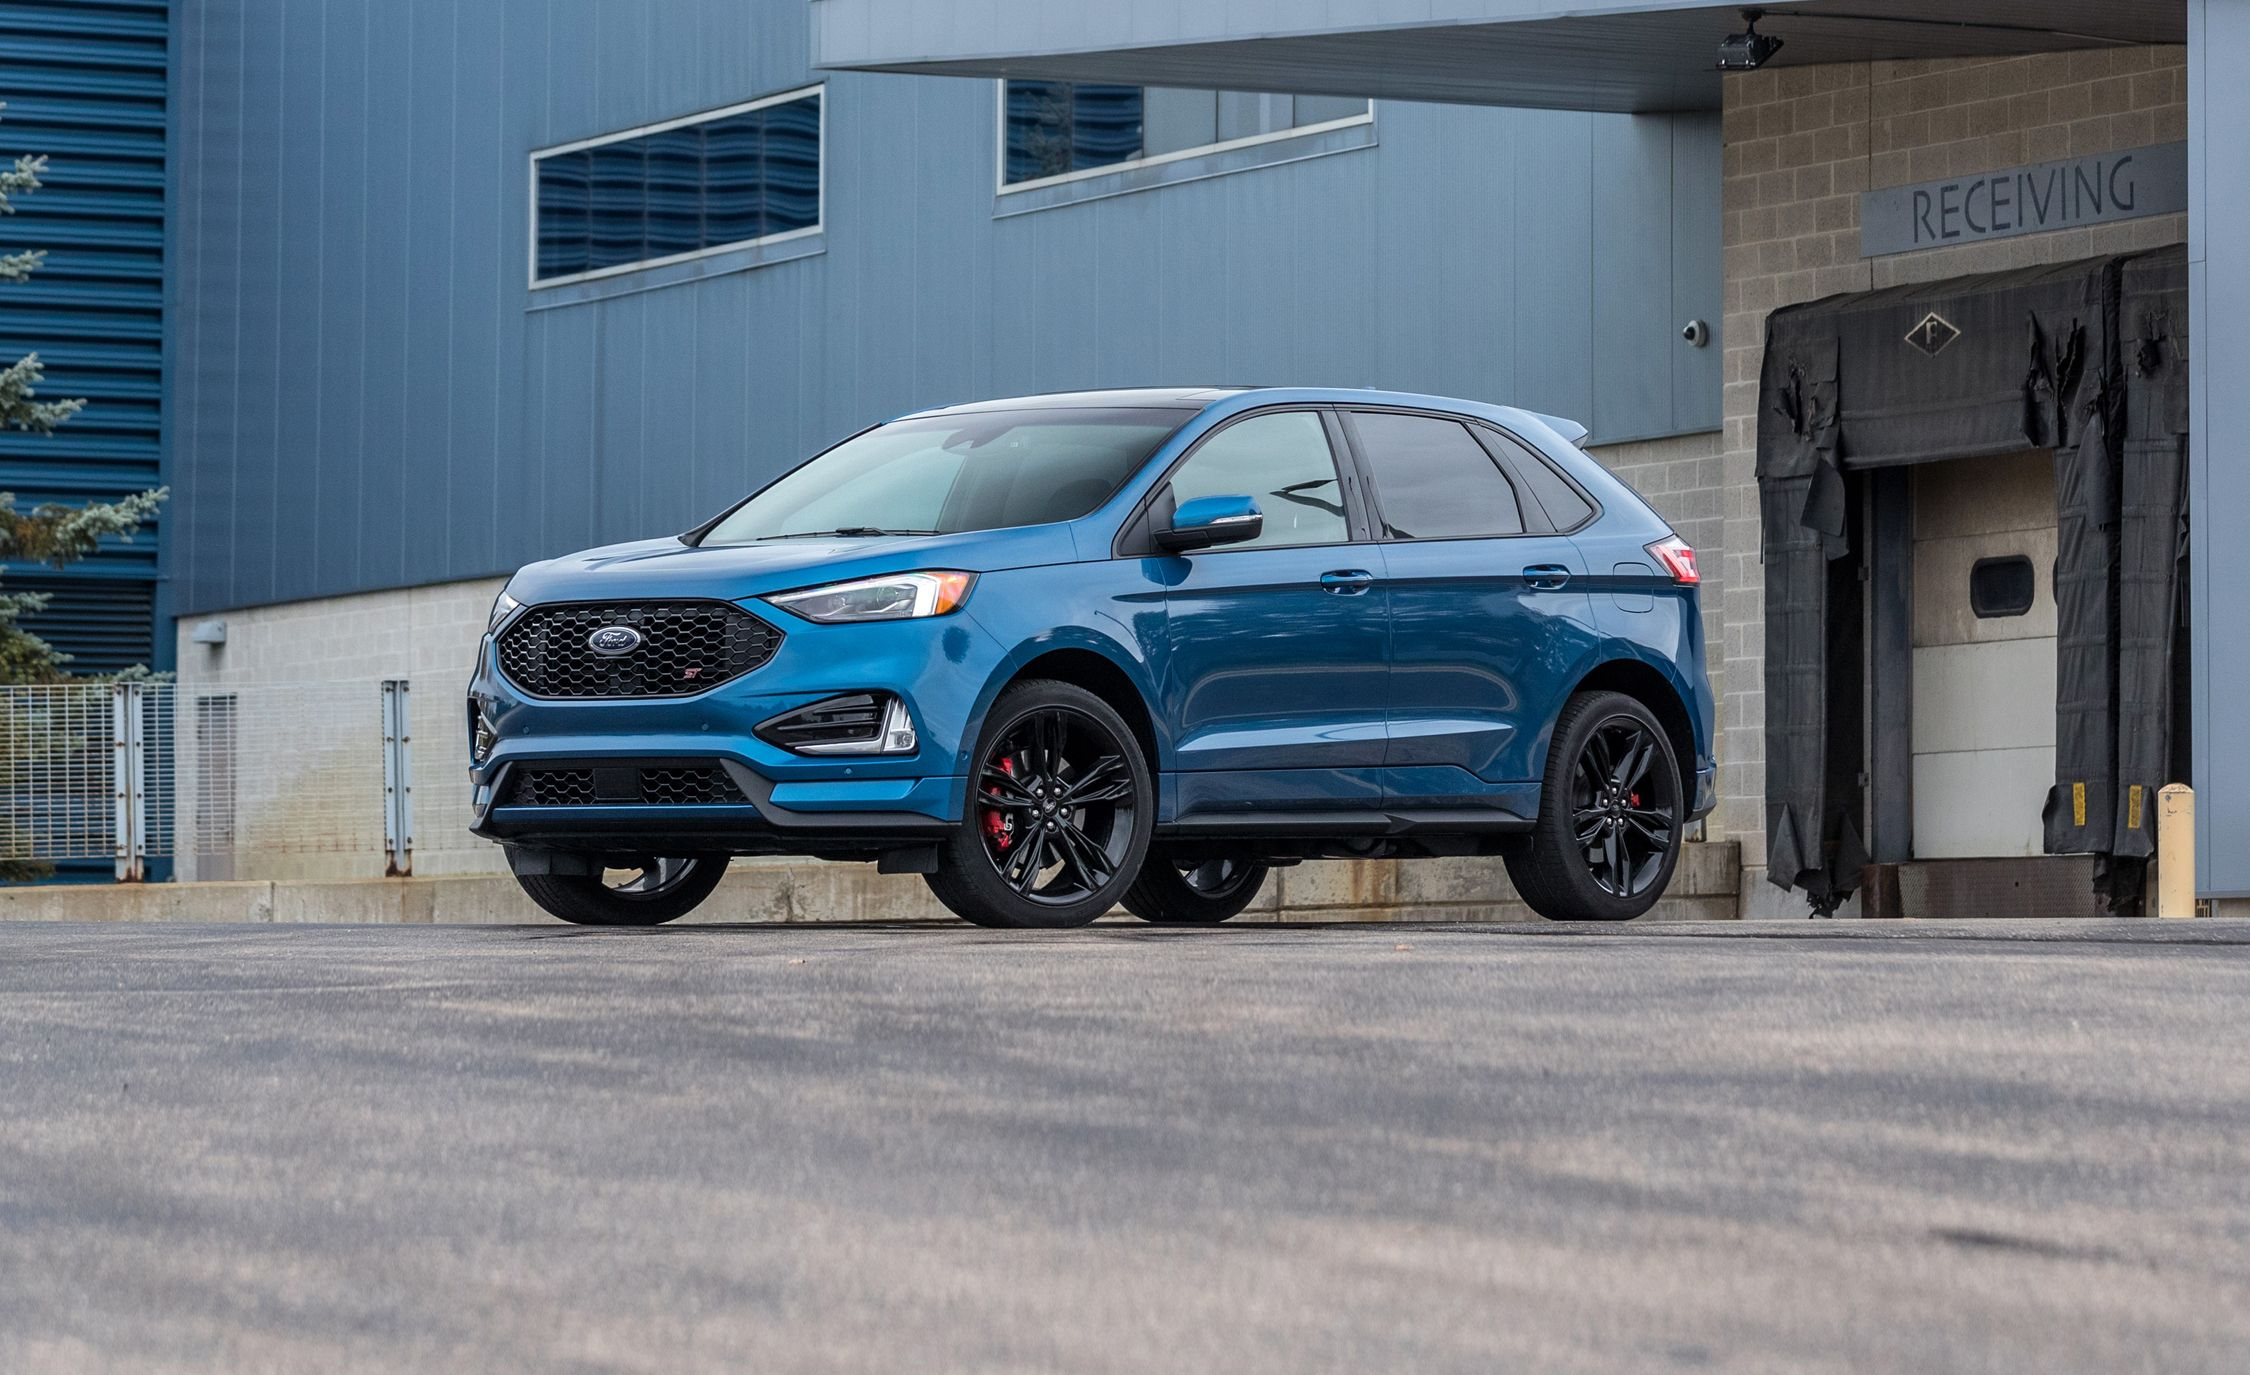 2019 Ford Edge Reviews Ford Edge Price Photos And Specs Car